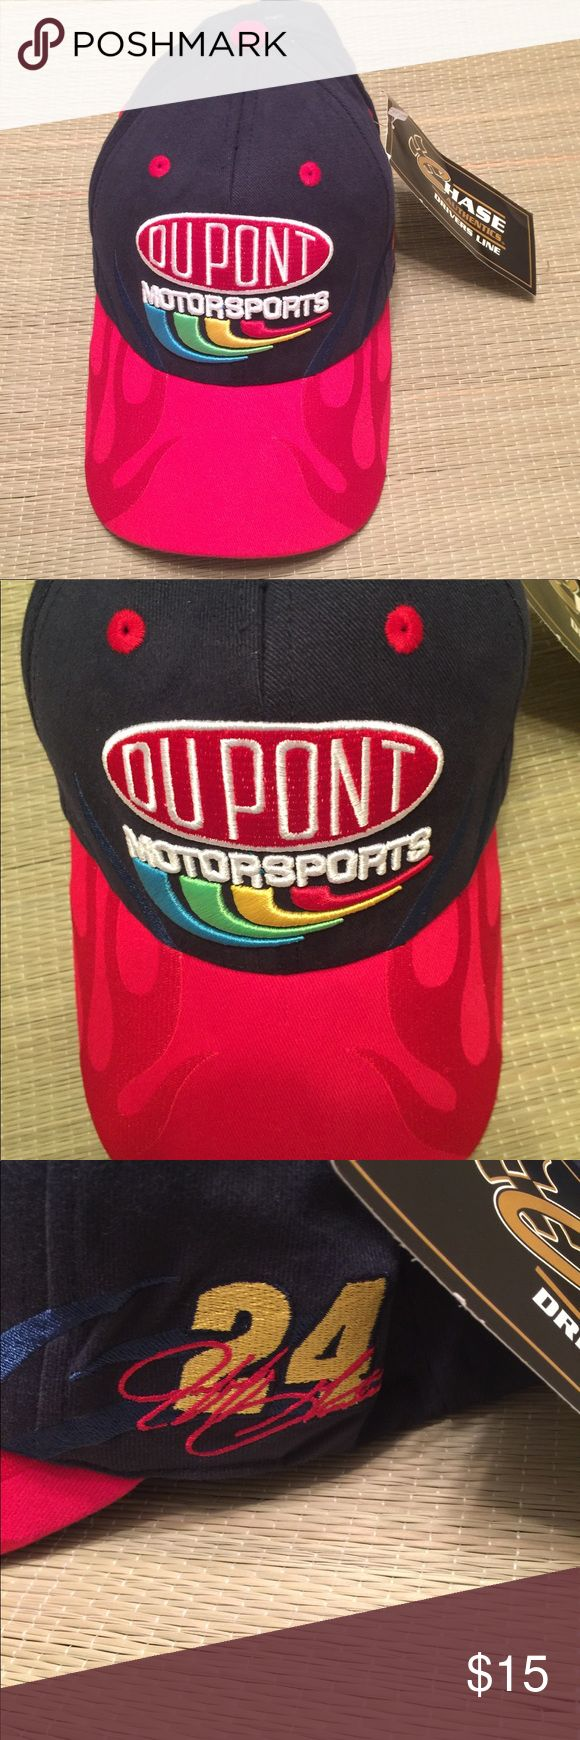 NWT vintage NASCAR racing dad hat Jeff Gordon New with tags. Amazing hat in person! Vintage dad hat Chase Authentics vintage NASCAR hat from 90s. Vibrant color and super sturdy bill (with flames detail) embroidered logos. flex fit comfort. Definitely a comfortable hat. No flaws at all new condition. Red blue white yellow multicolor Jeff Gordon #24 DuPont NASCAR hat. 💕perfect with a vintage windbreaker  for 90s style 💕💕price firm ships next day.  Tags: vintage Nike hat 90s vintage…